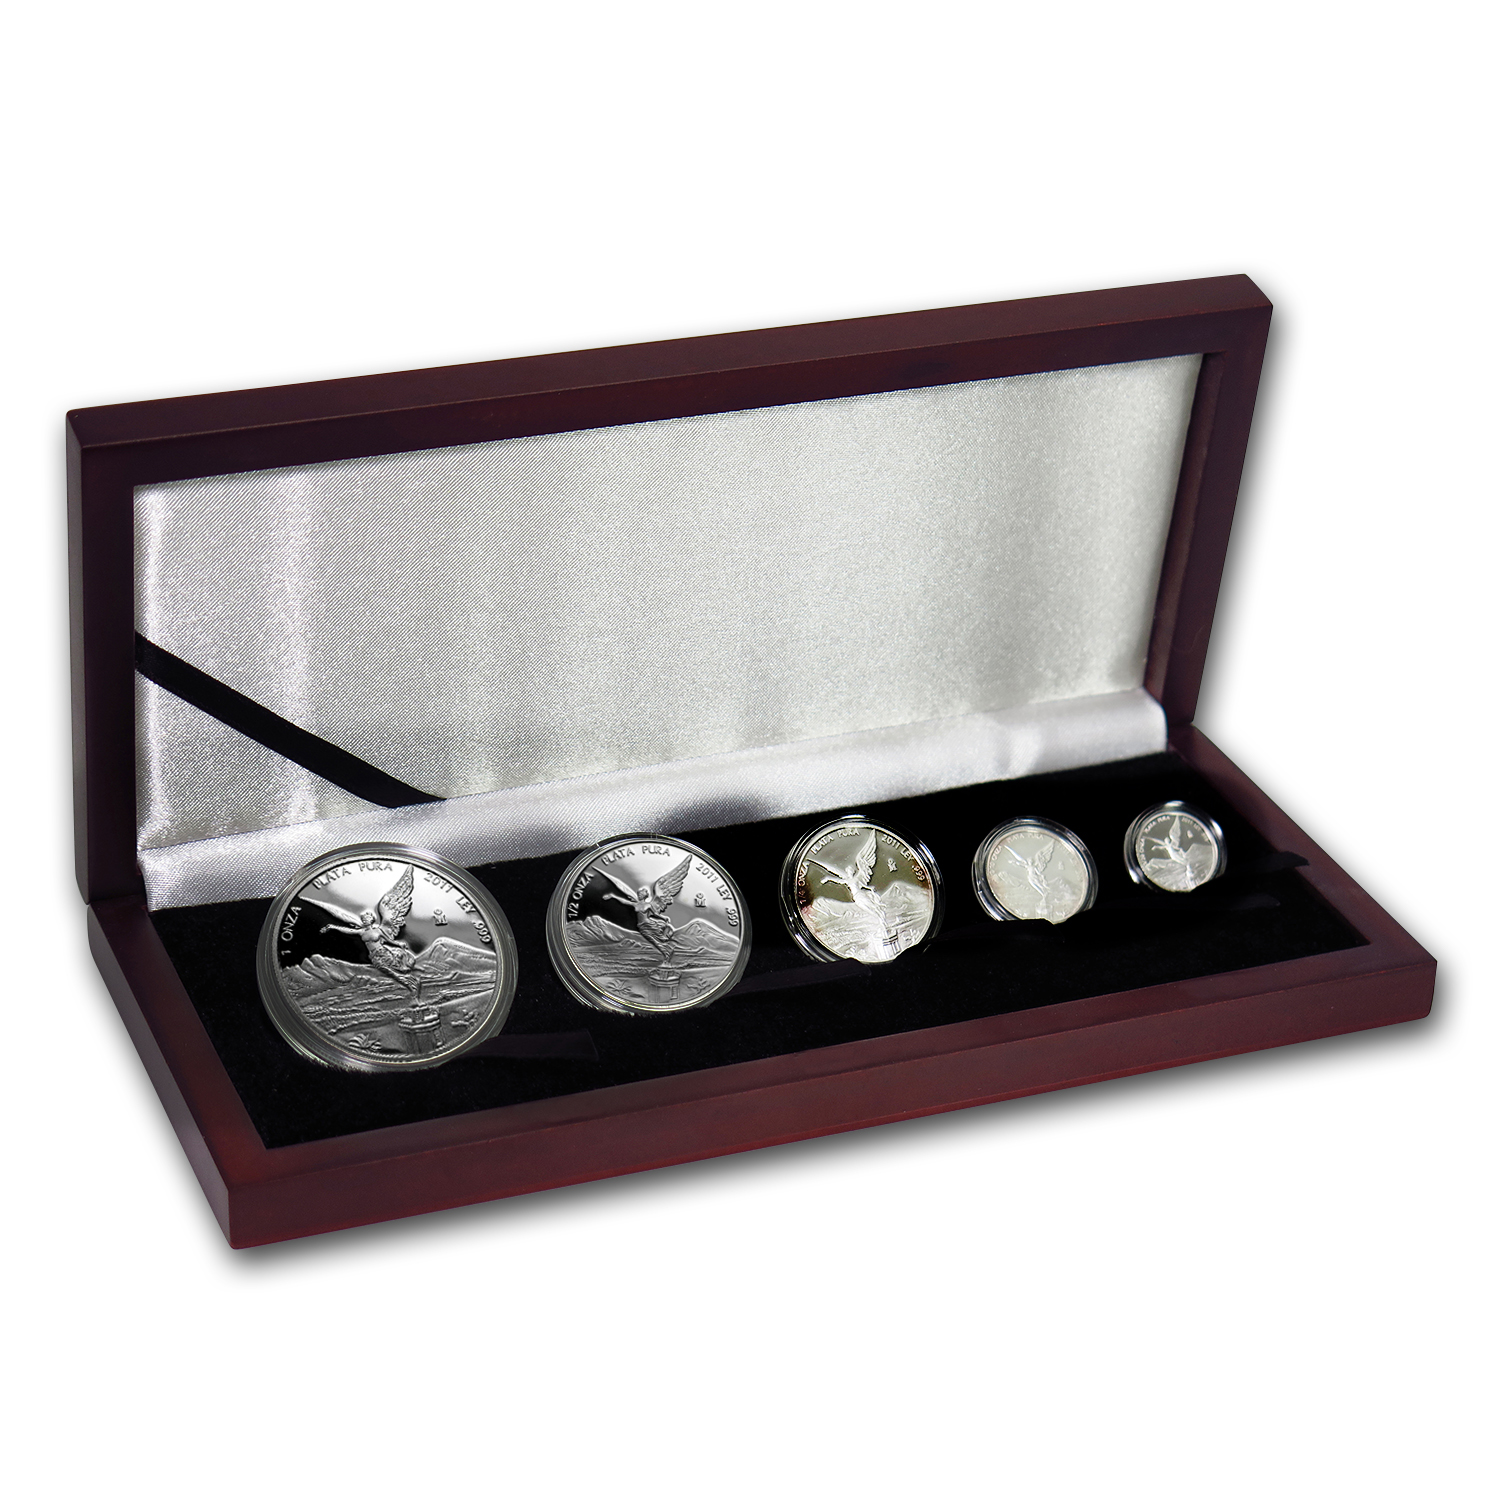 2011 Mexico 5-Coin Silver Libertad Proof Set (1.9 oz, Wood Box)